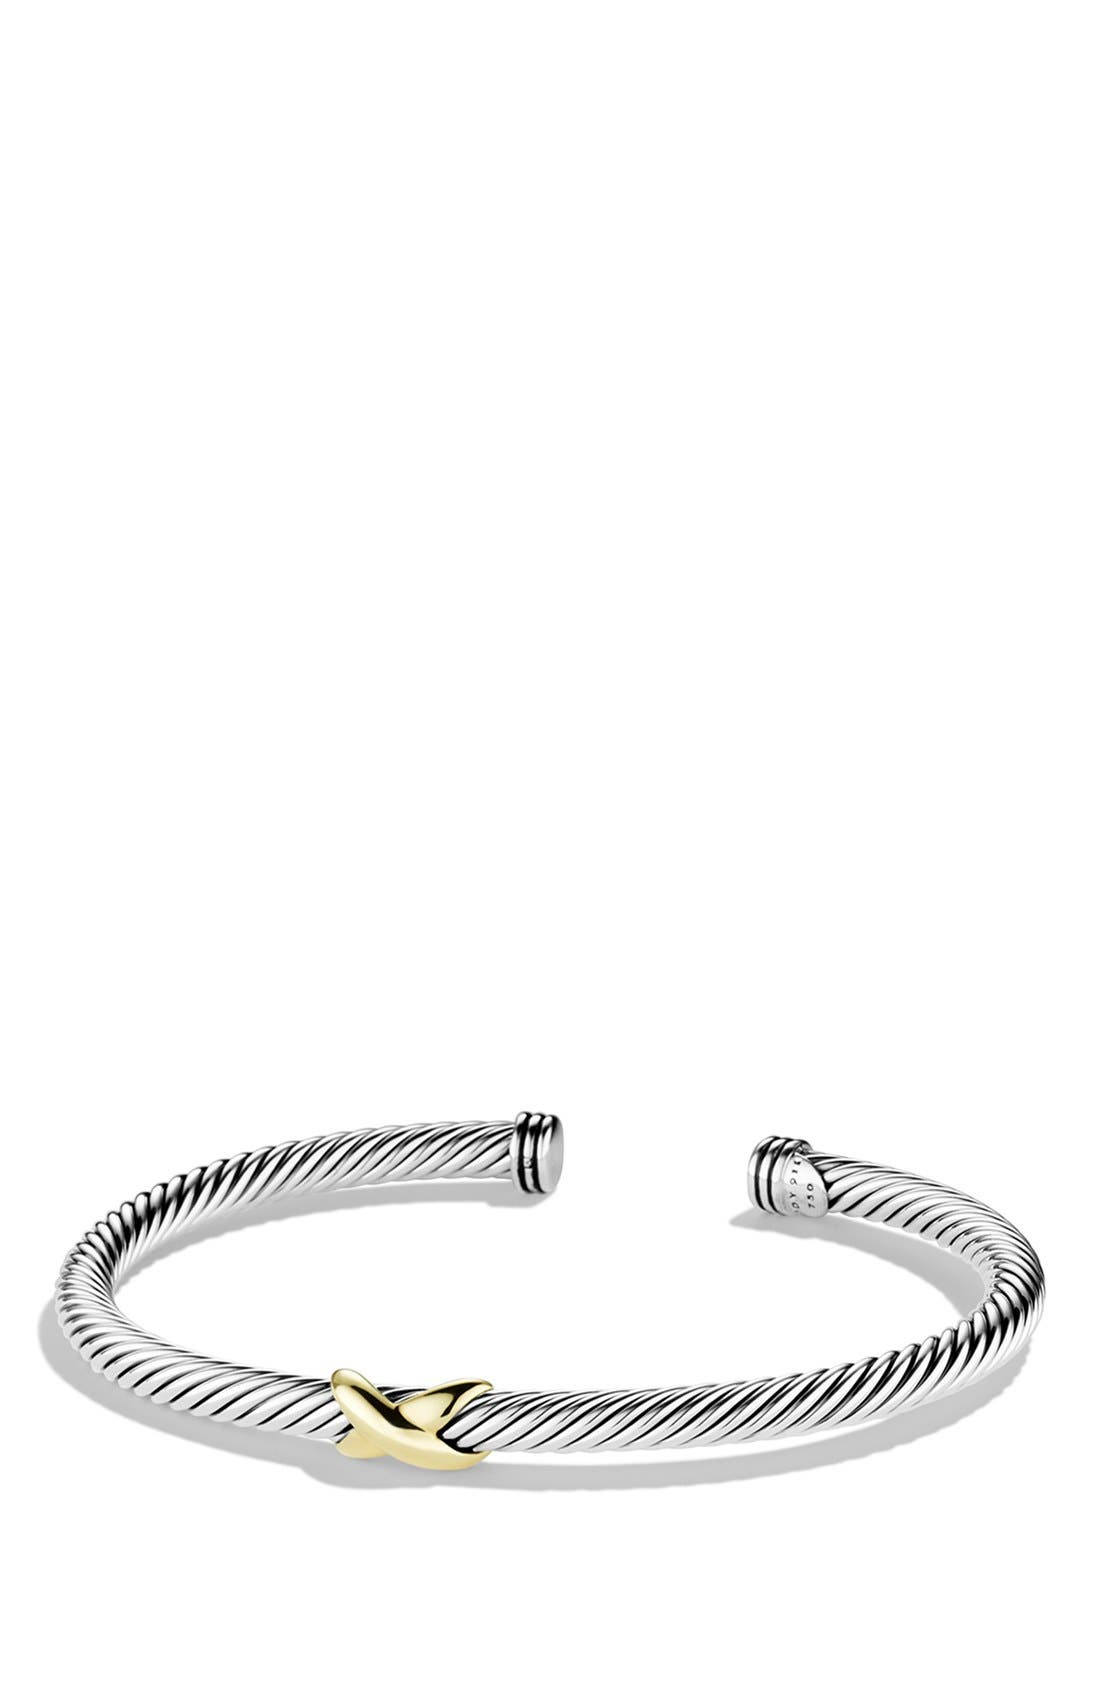 Main Image - David Yurman 'X' Bracelet with Gold